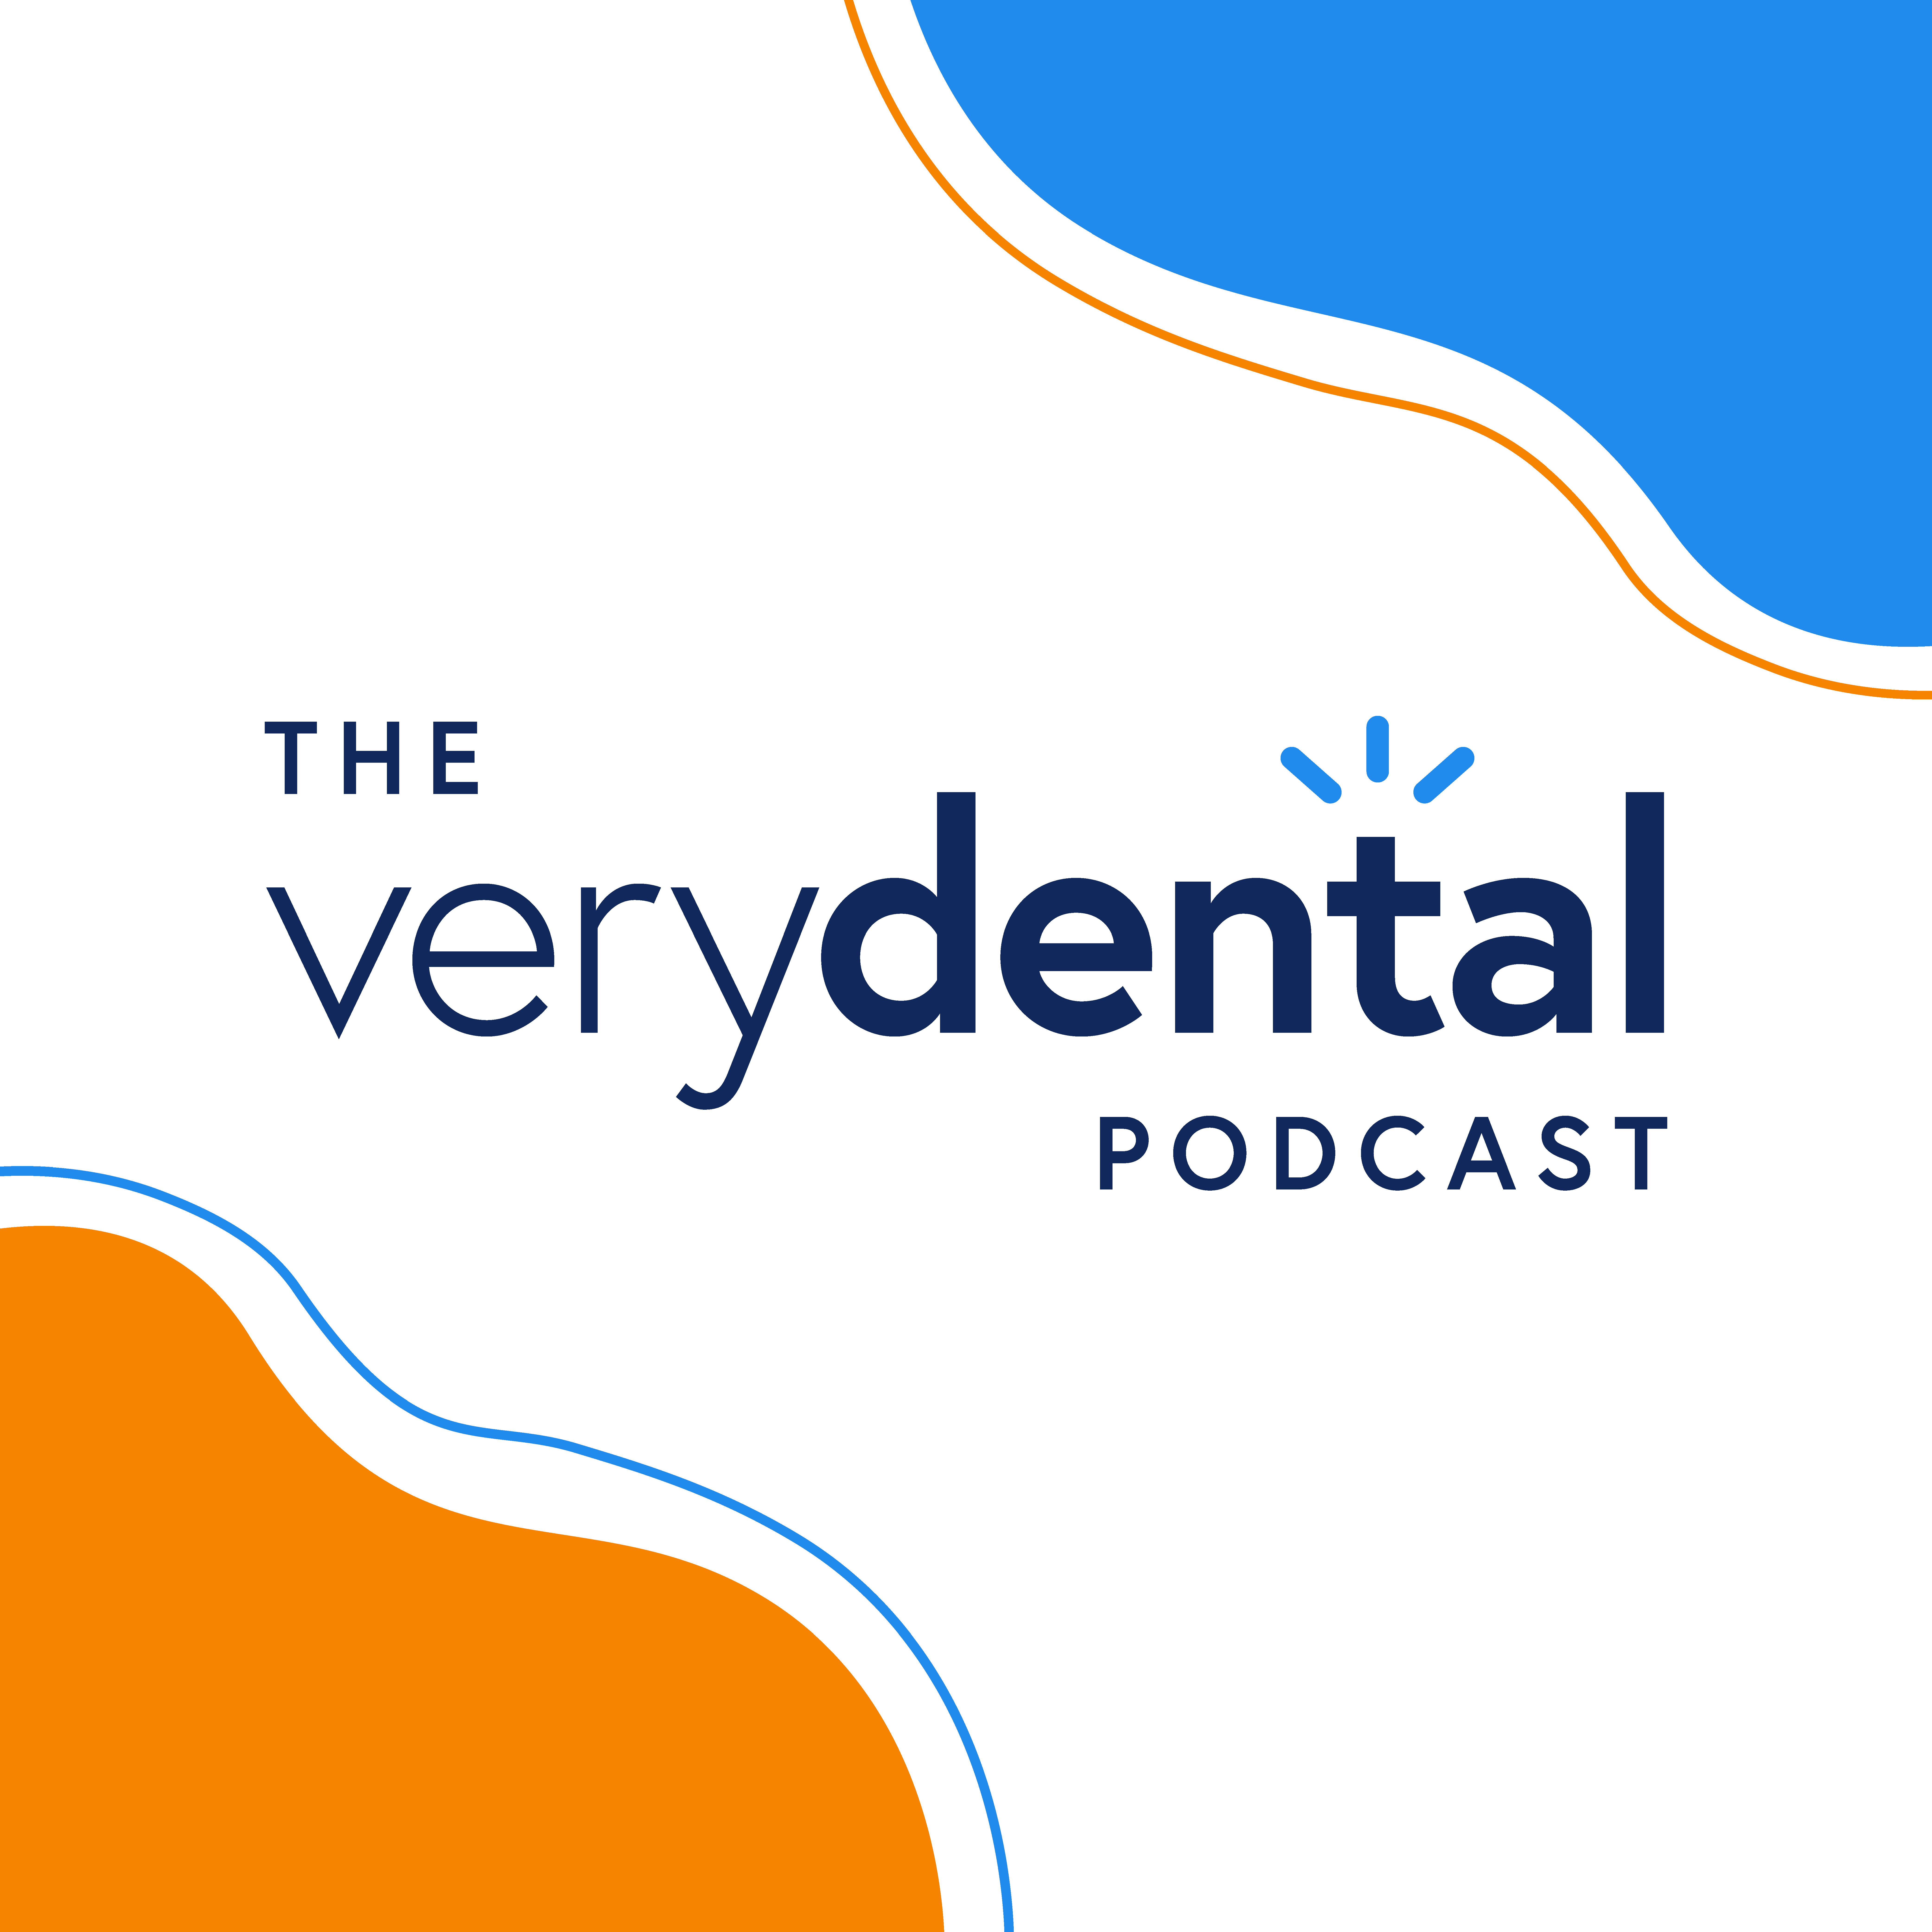 The Very Dental Podcast Network